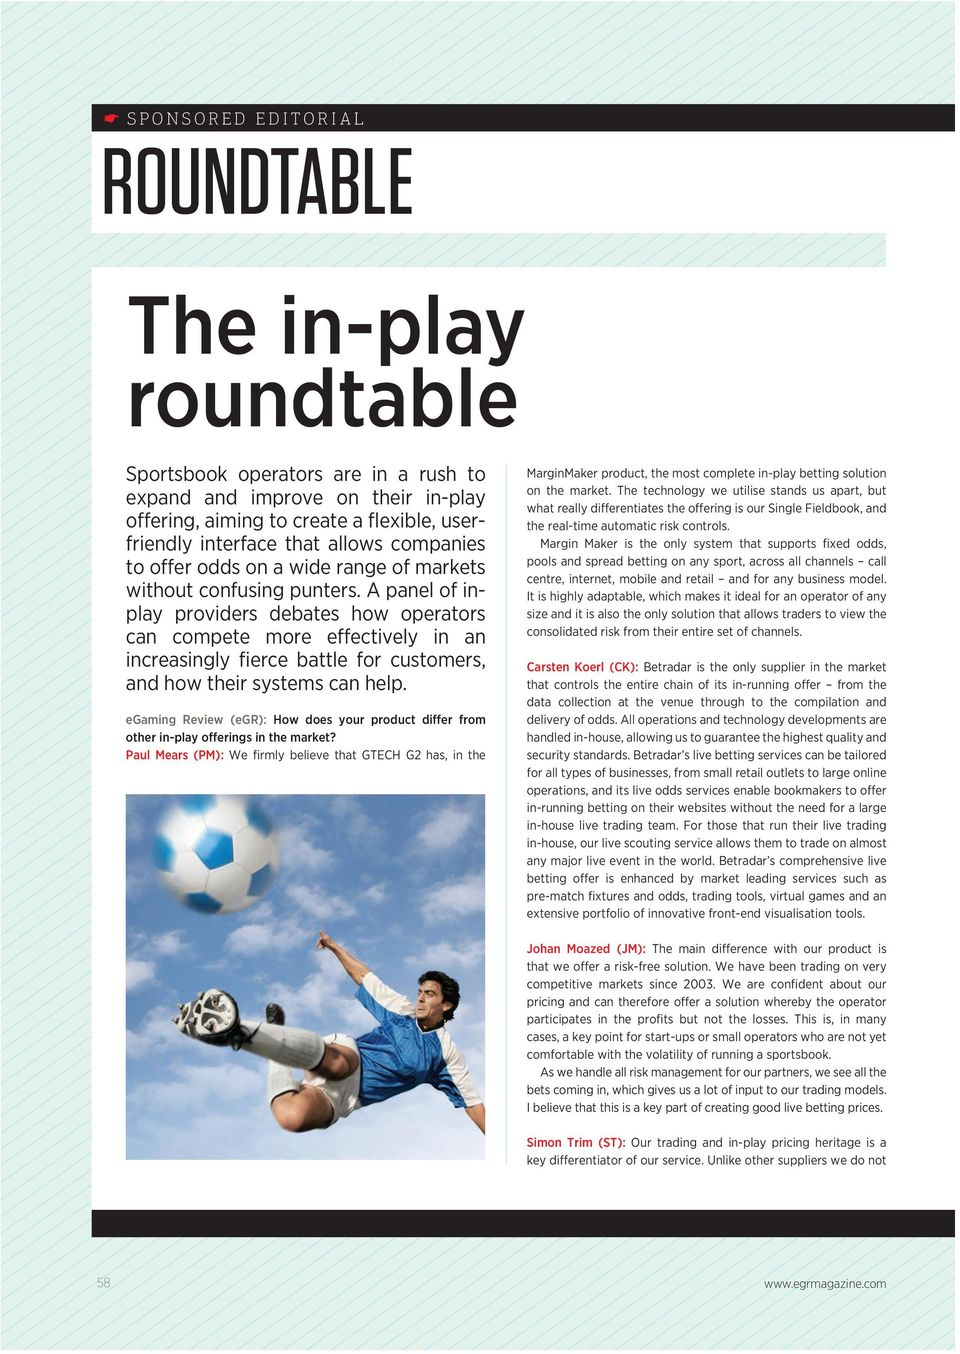 A panel of inplay providers debates how operators can compete more effectively in an increasingly fierce battle for customers, and how their systems can help.